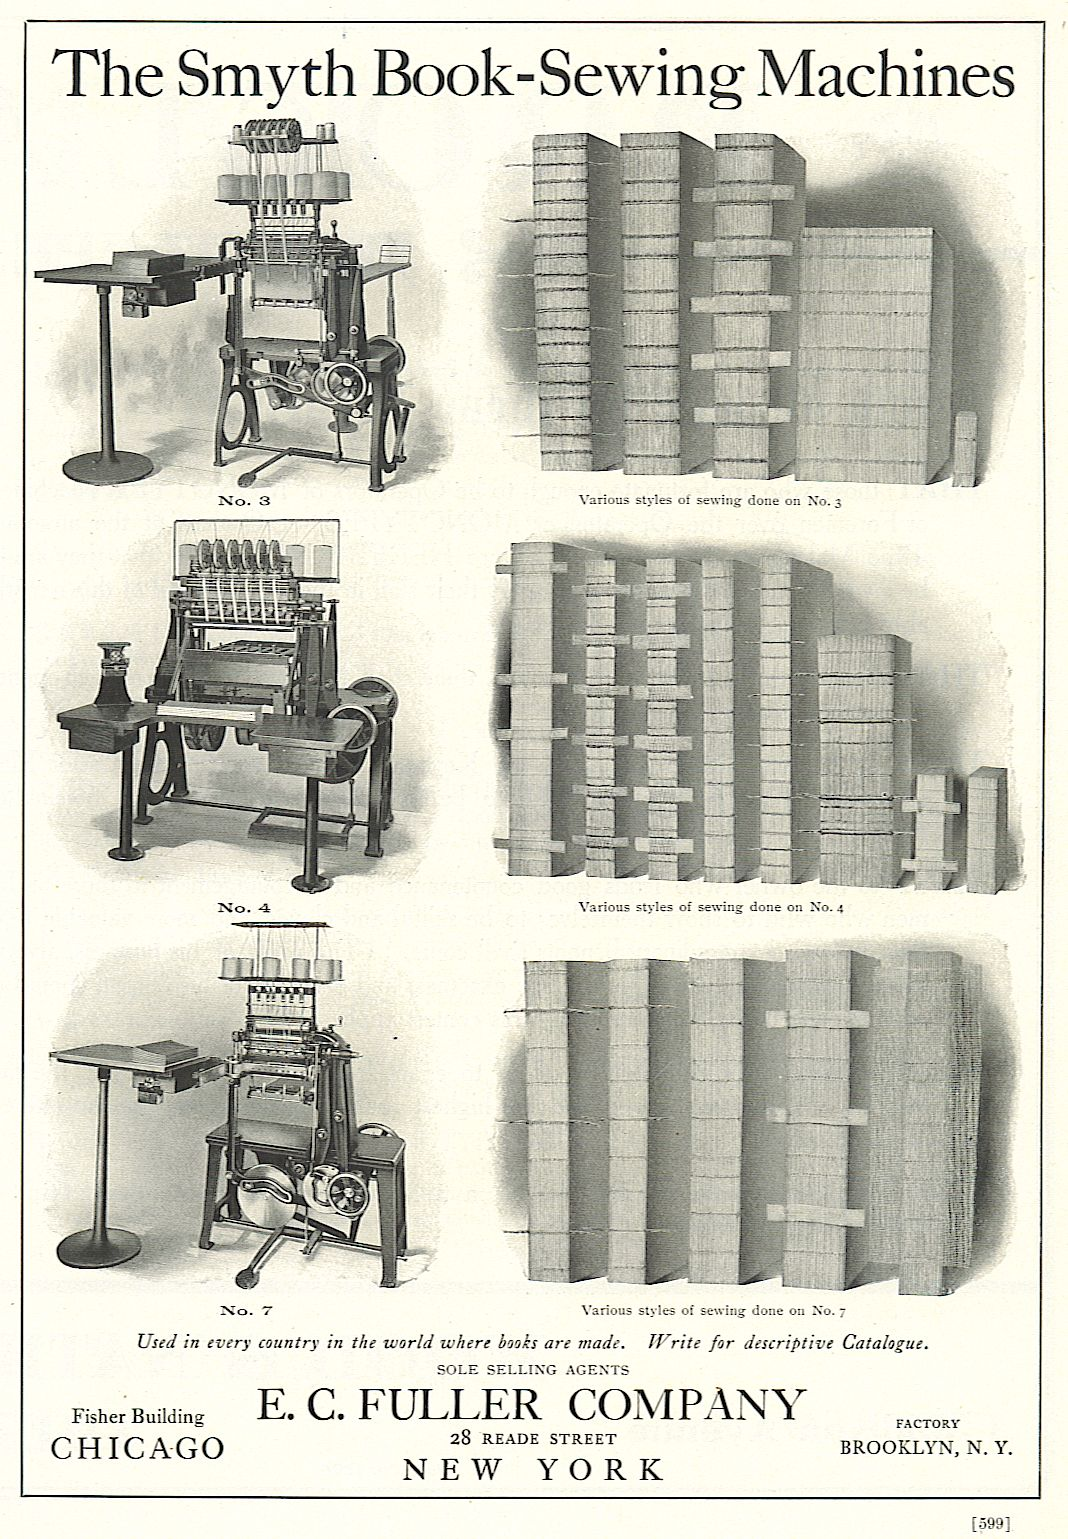 The Smyth book sewing machine